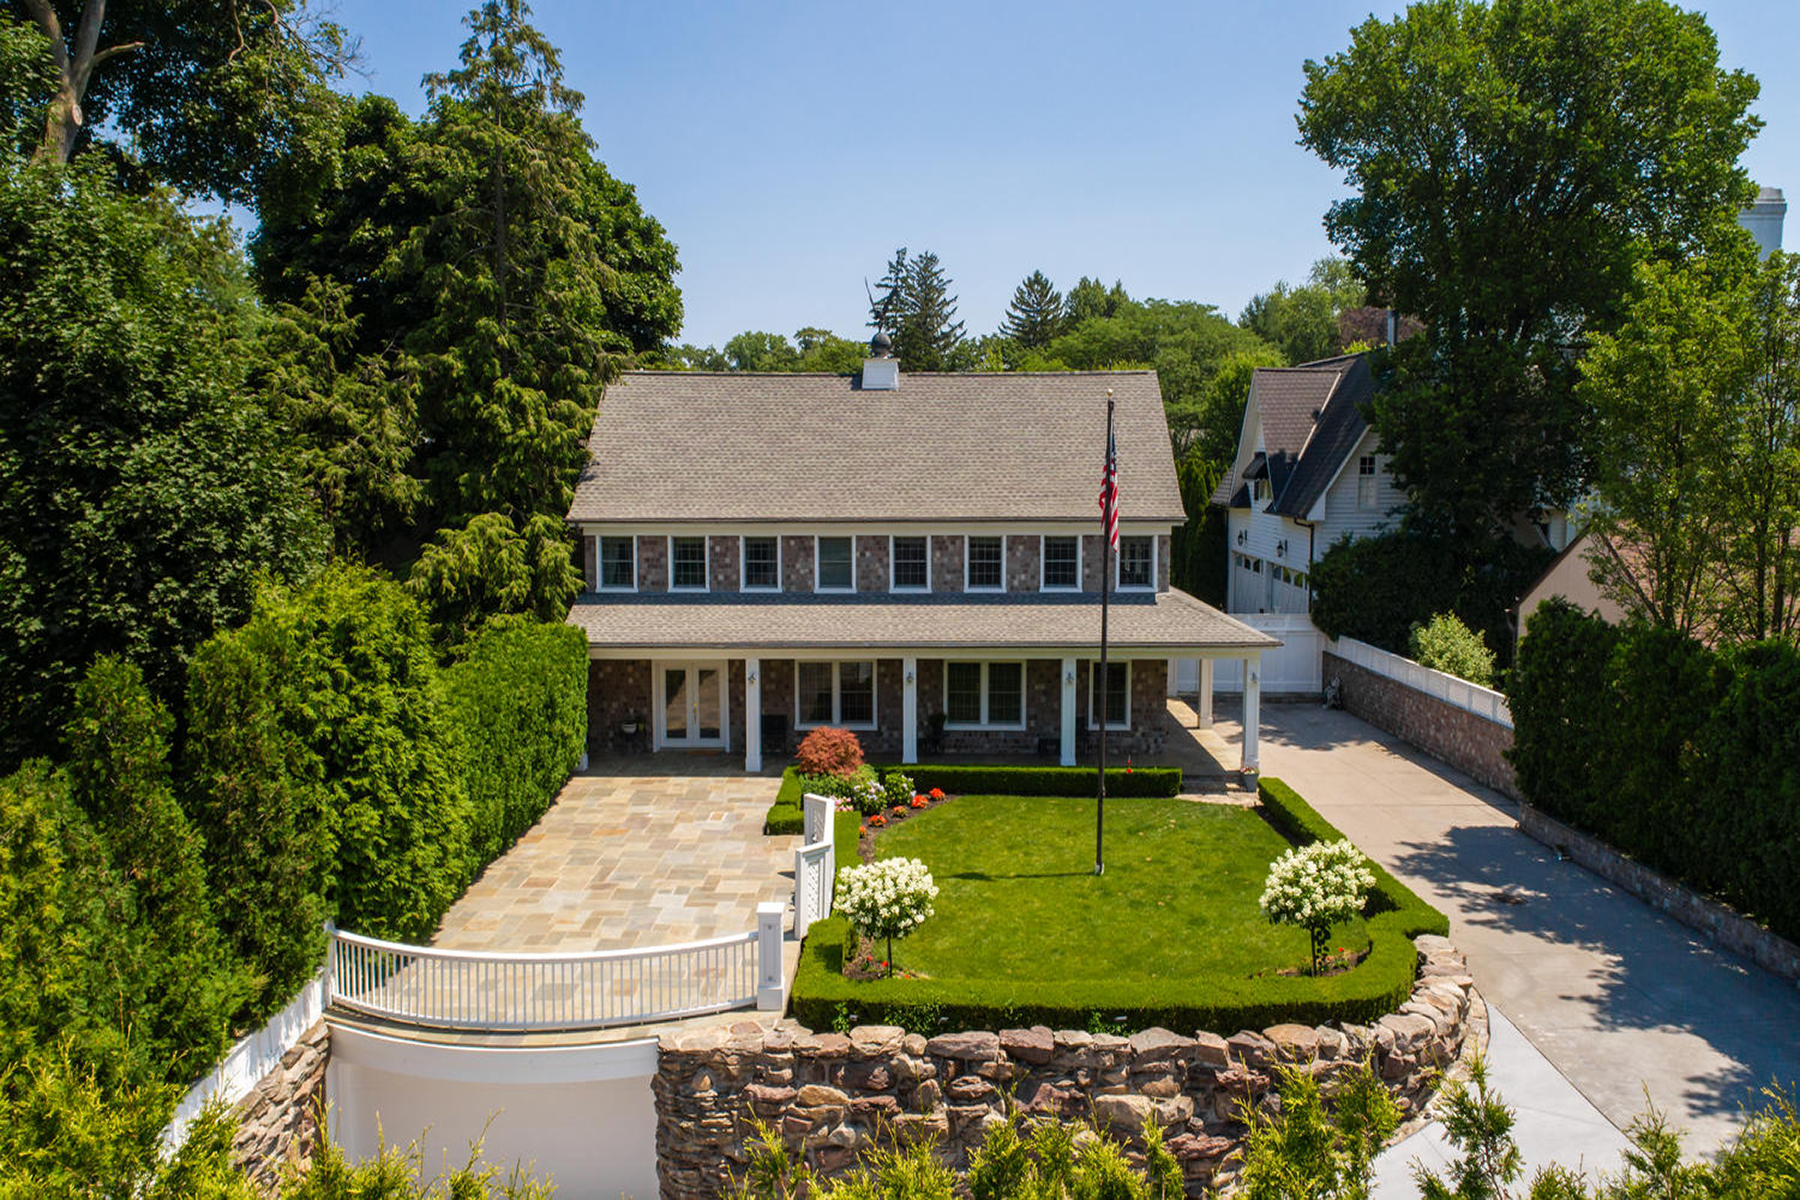 Single Family Homes for Sale at Grosse Pointe 270 Washington Grosse Pointe, Michigan 48230 United States